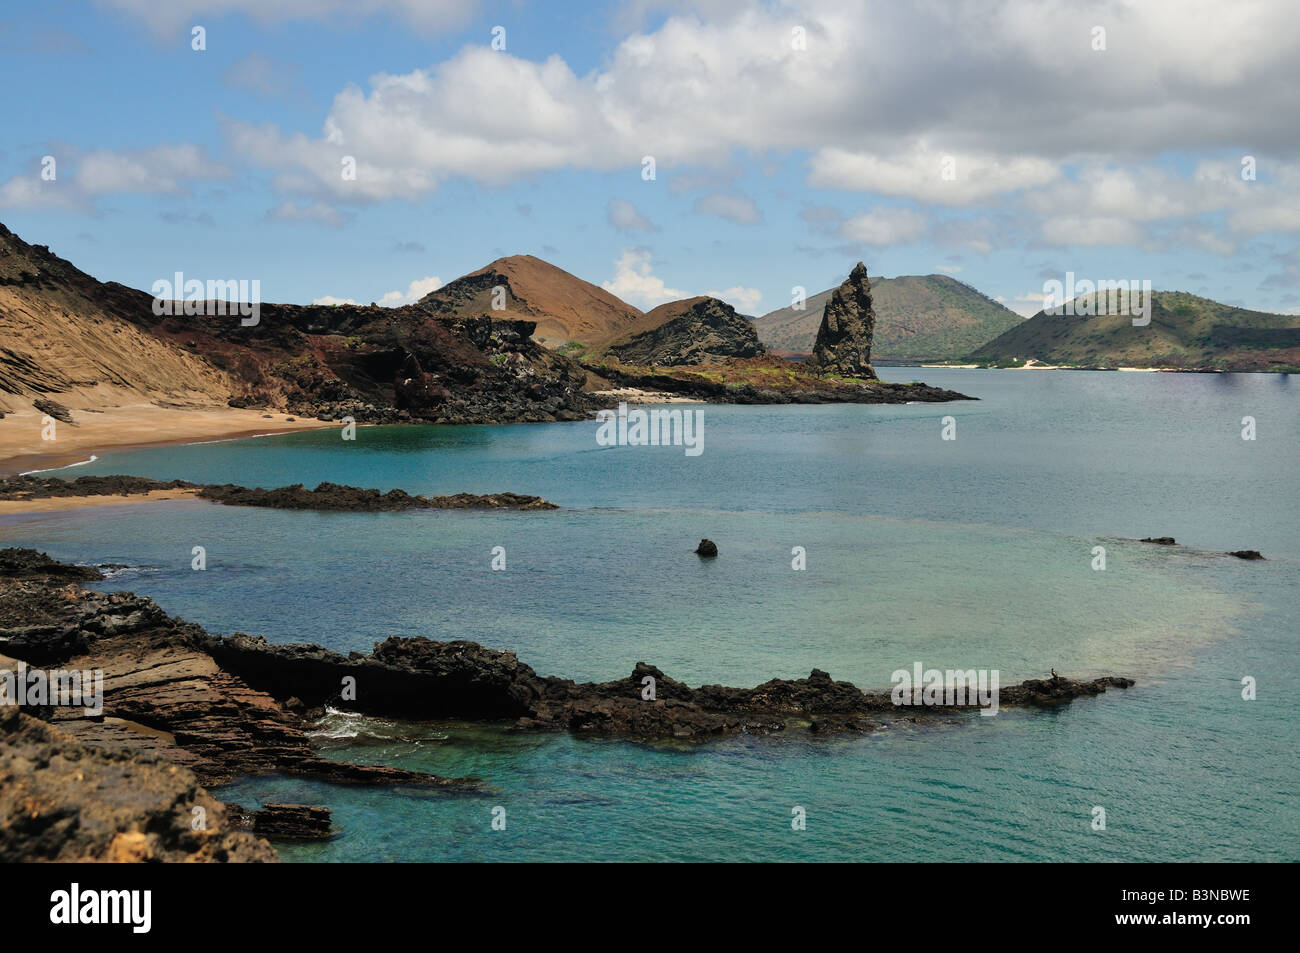 A view of the famous Pinnacle Rock at Bartolome Island, Galapagos. Tropical blue waters and a rocky circular pool - Stock Image